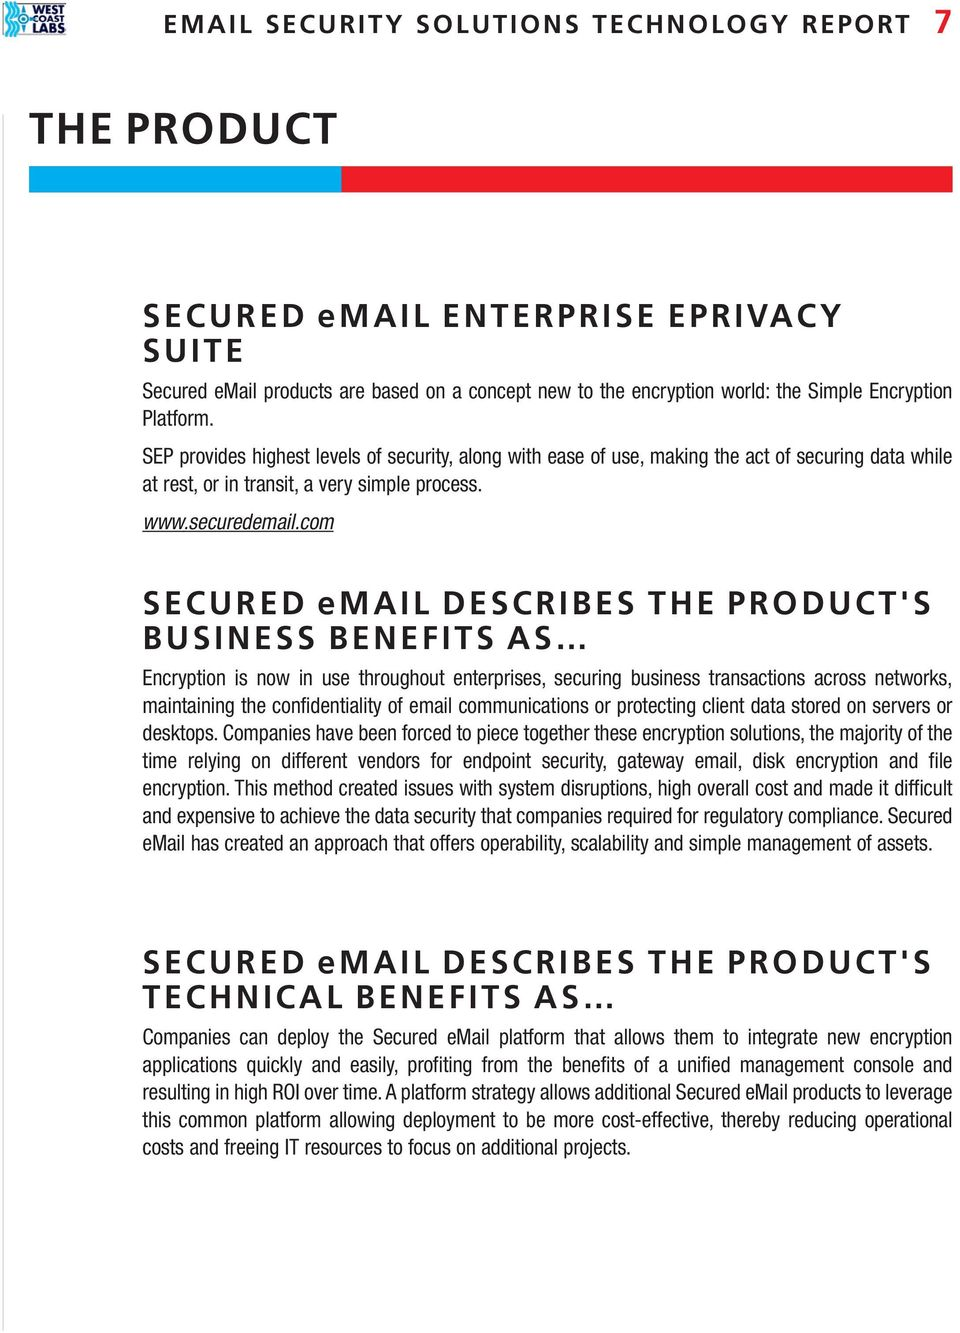 com SECURED email DESCRIBES THE PRODUCT'S BUSINESS BENEFITS AS Encryption is now in use throughout enterprises, securing business transactions across networks, maintaining the confidentiality of